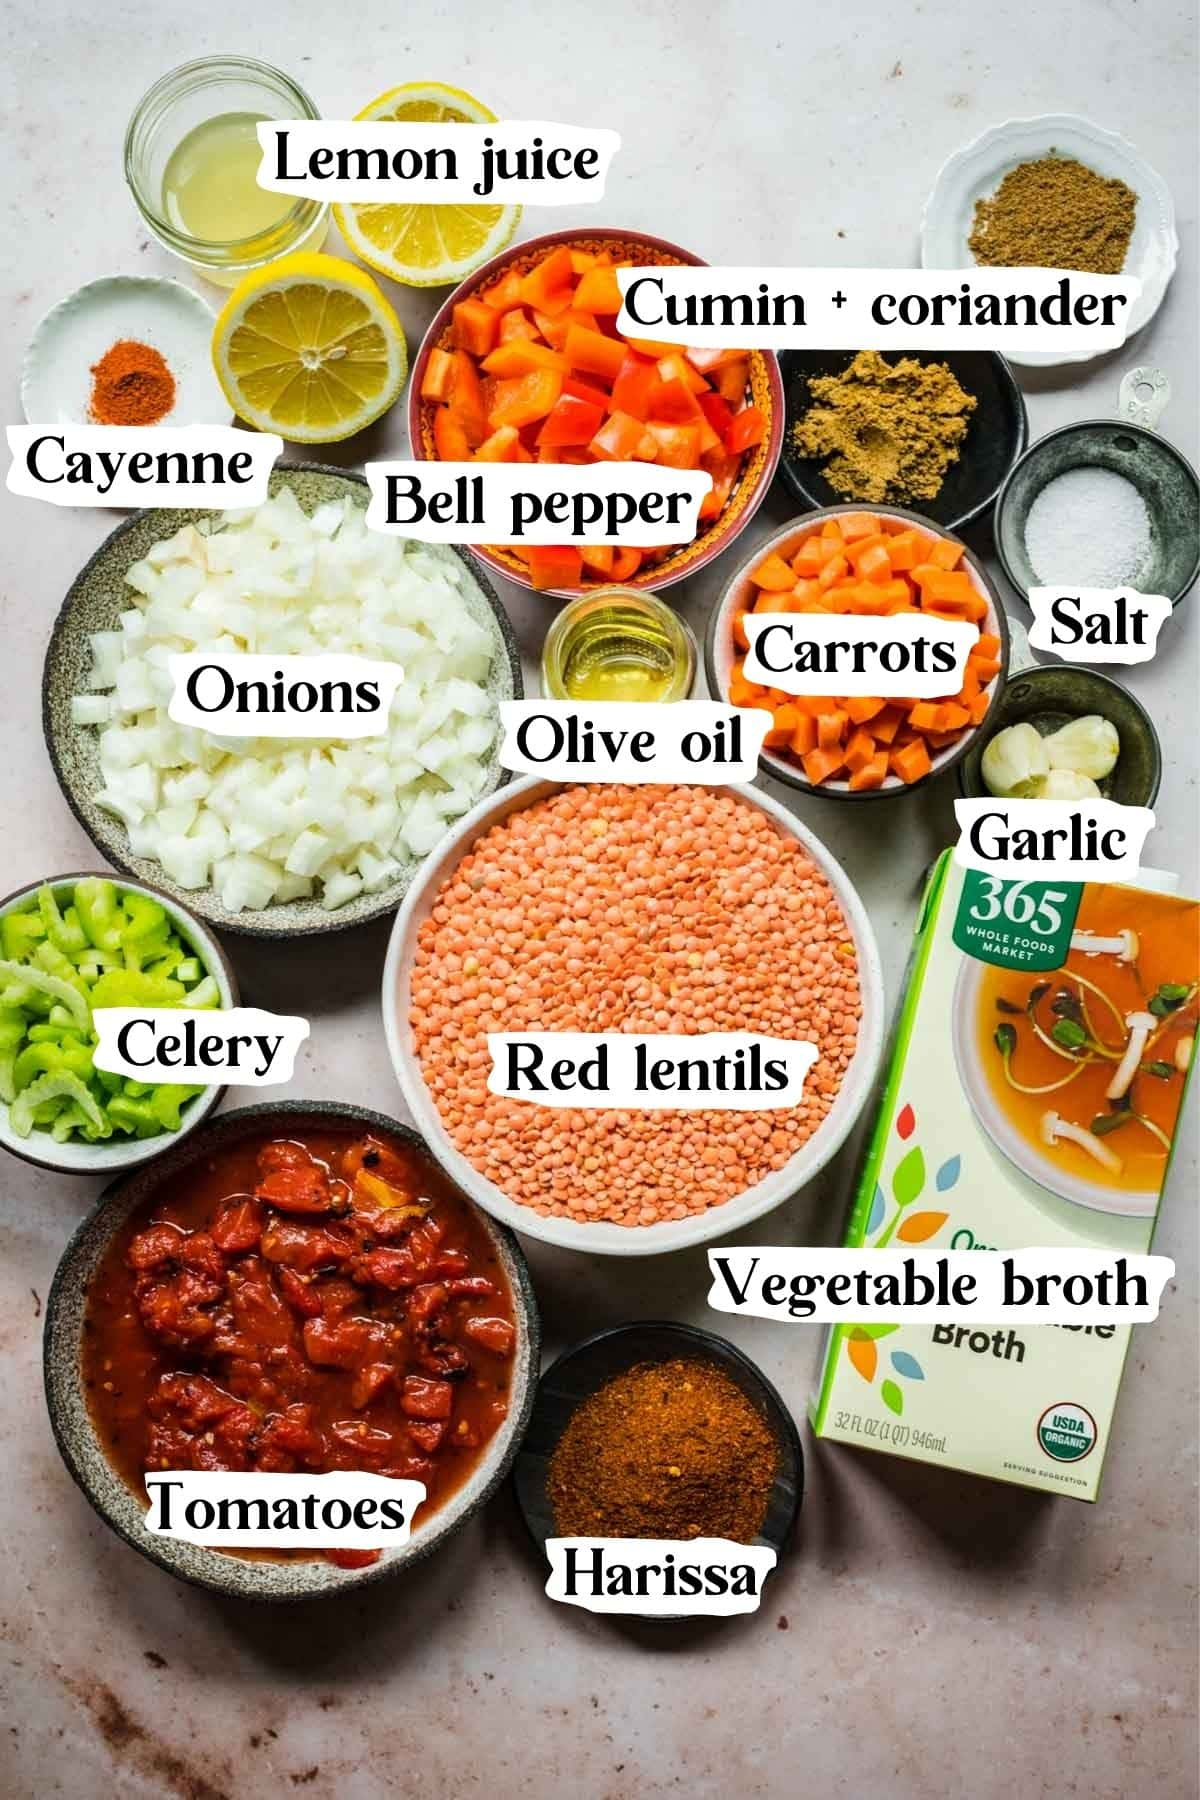 Overhead view of red lentil soup ingredients, including spices and vegetable broth.